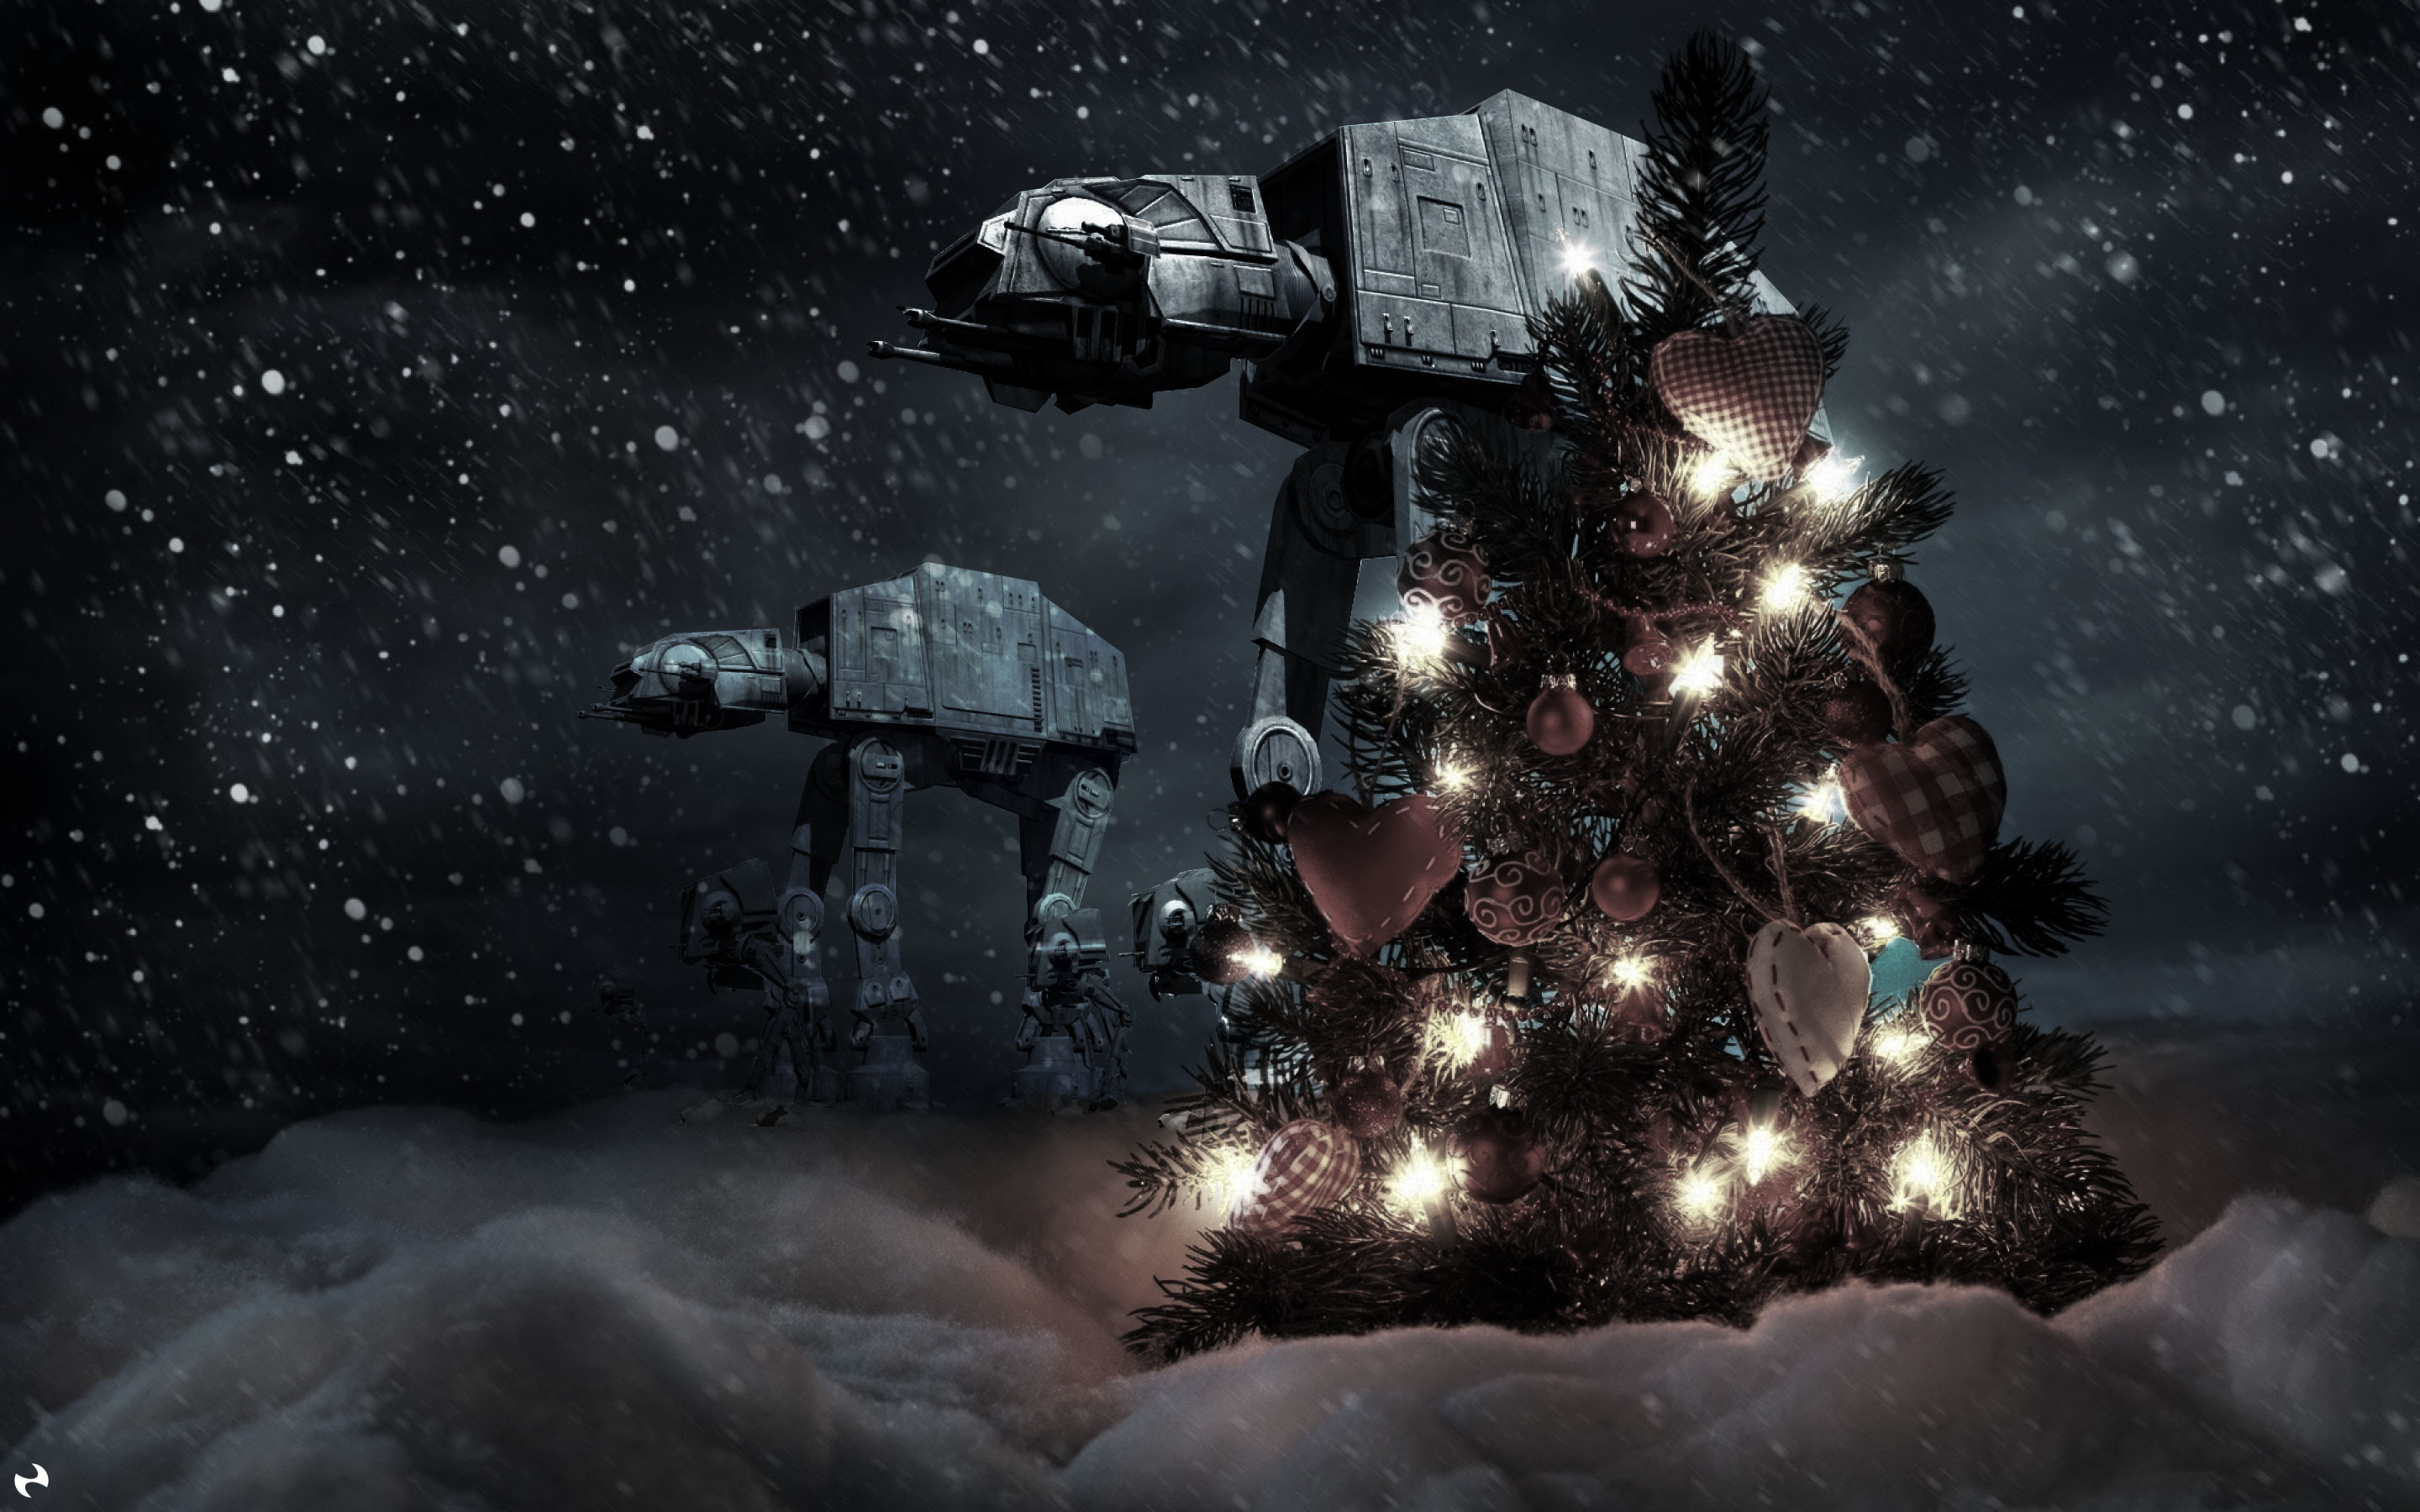 Star Wars Christmas Wallpaper 67 Images